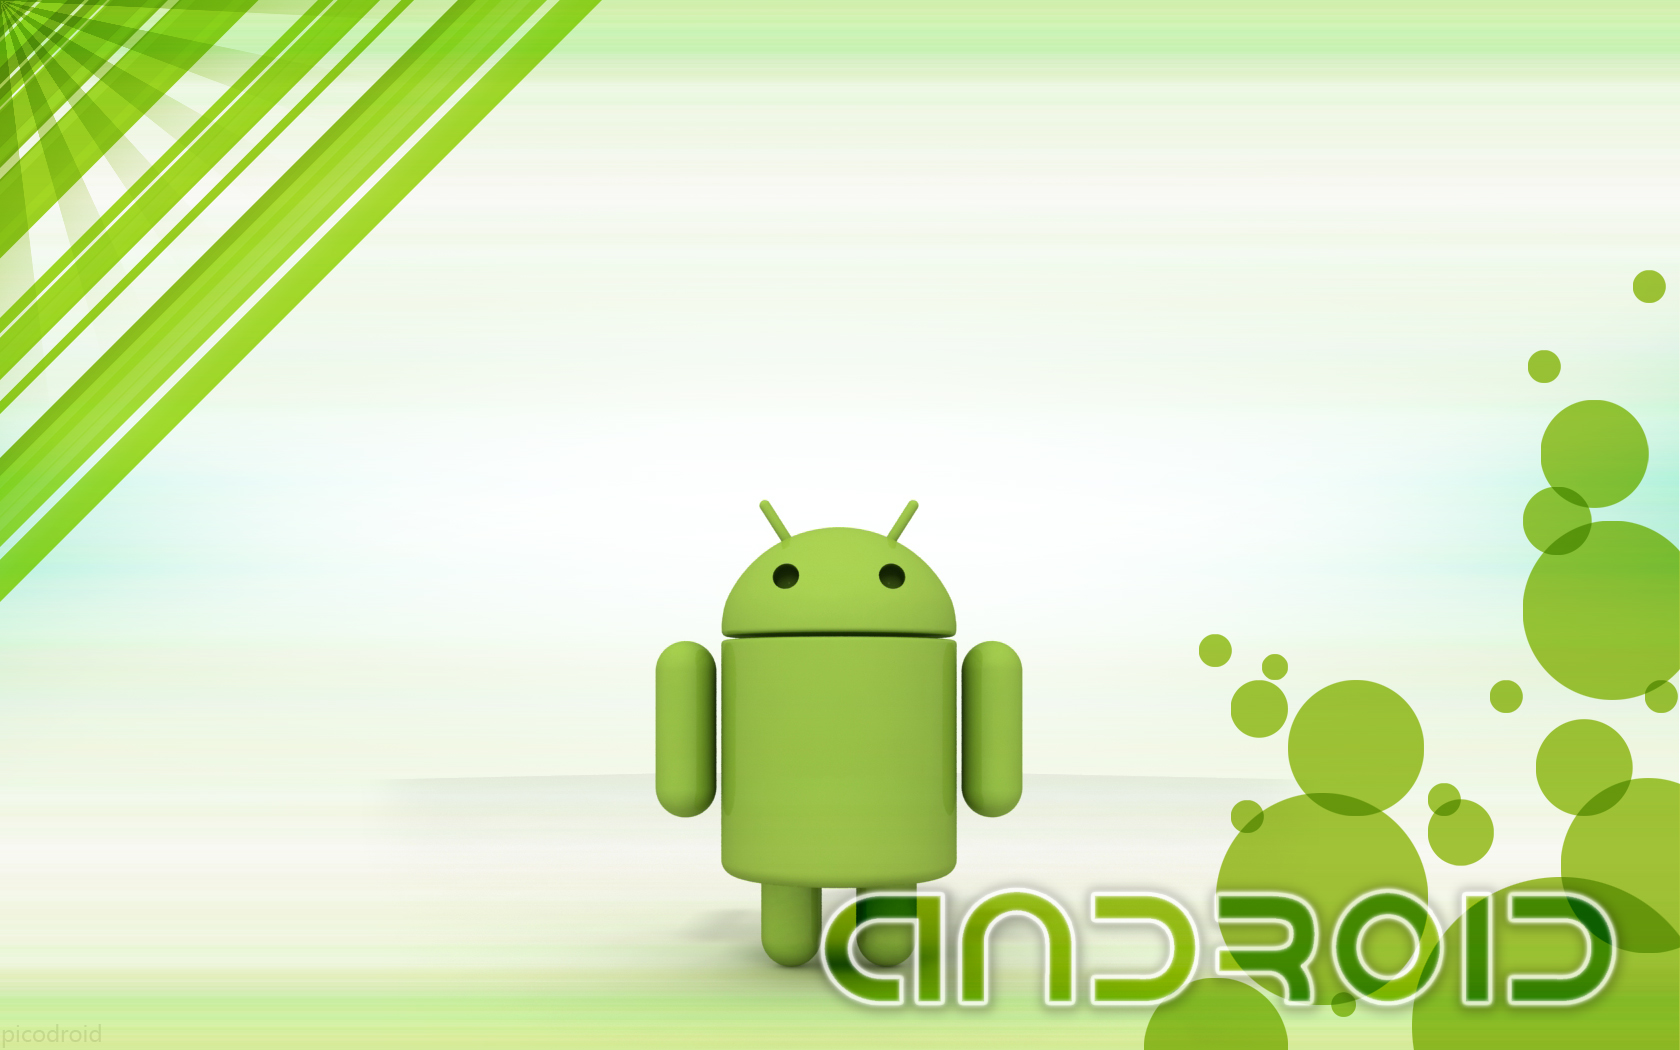 Wallpaper-Android-en-tonos-verdes-Full-HD